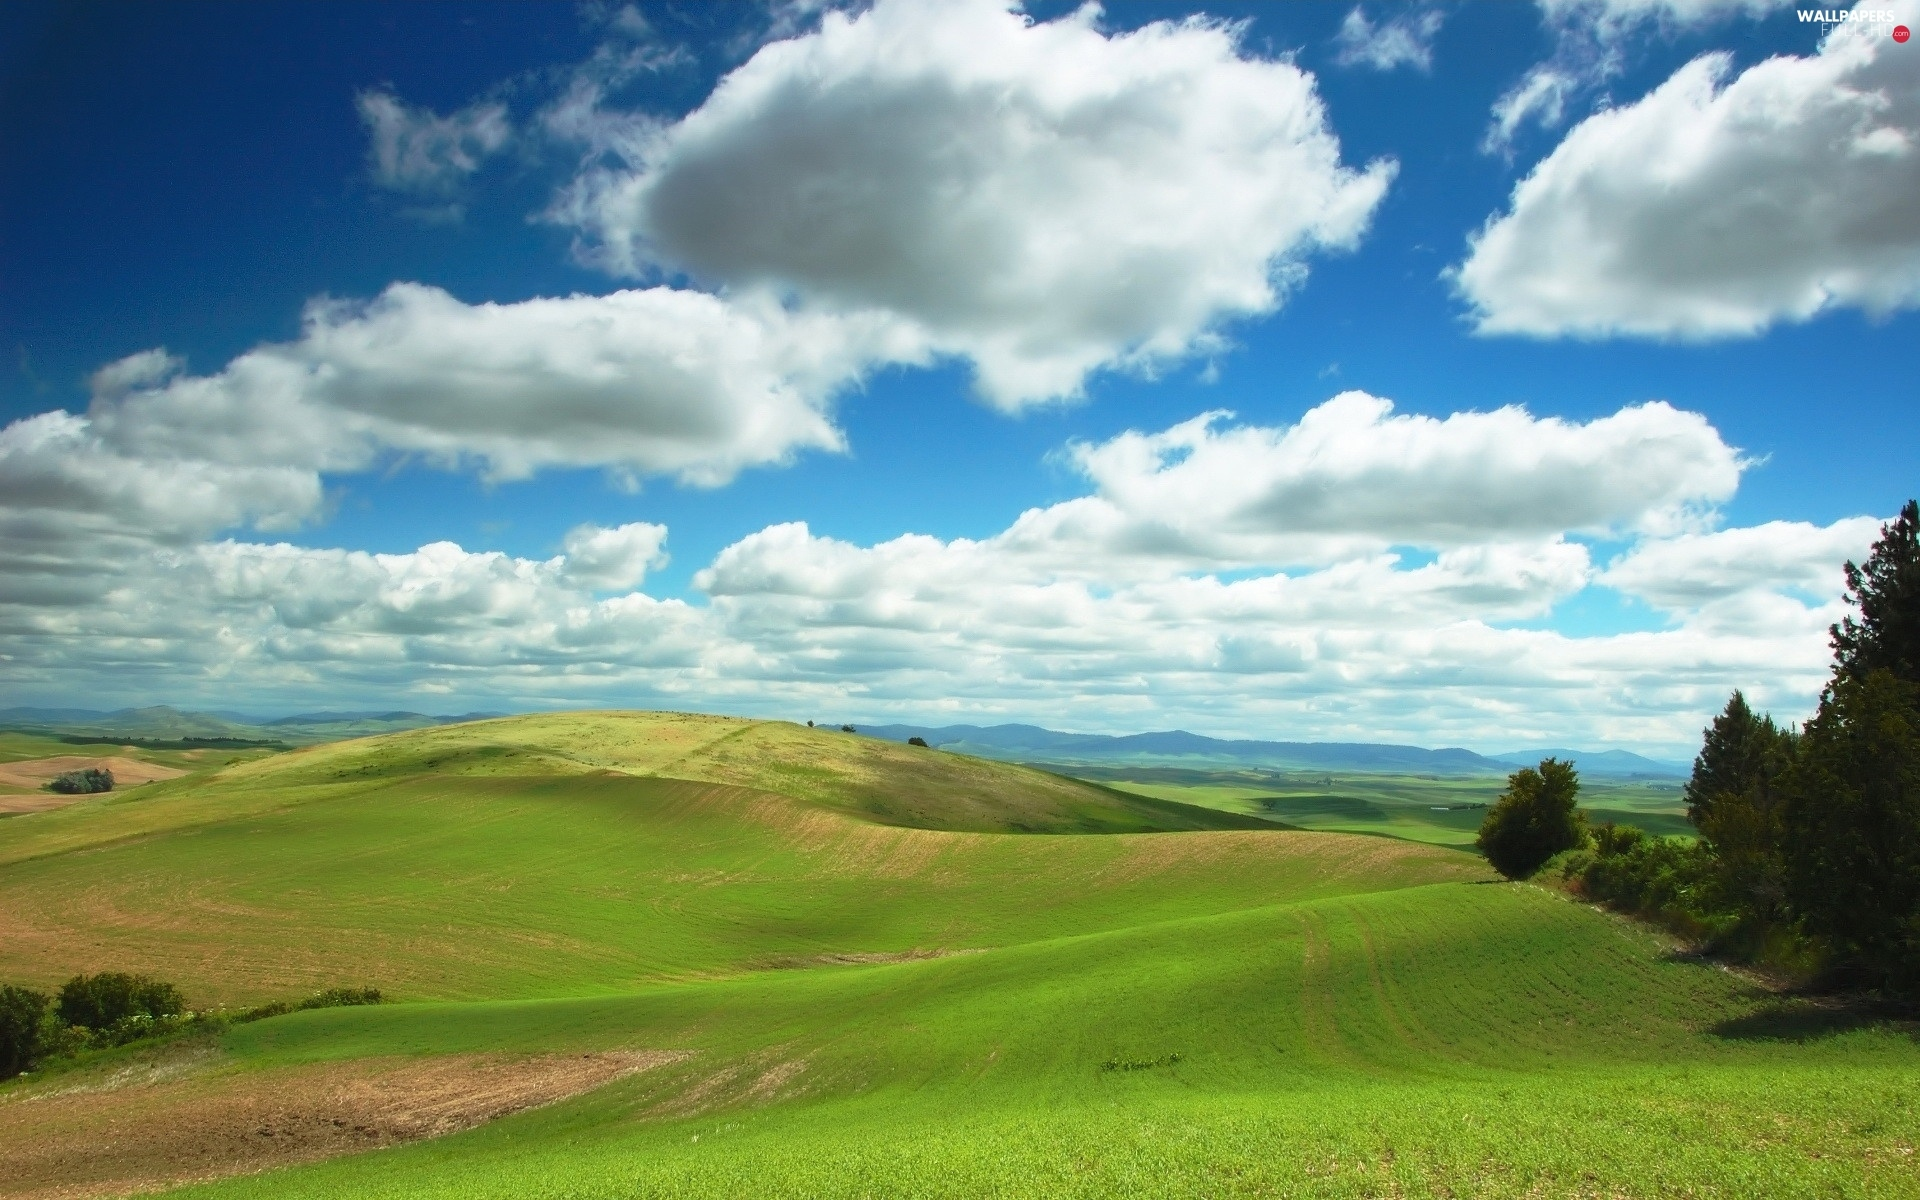 Mountains, trees, viewes, panorama, clouds, field